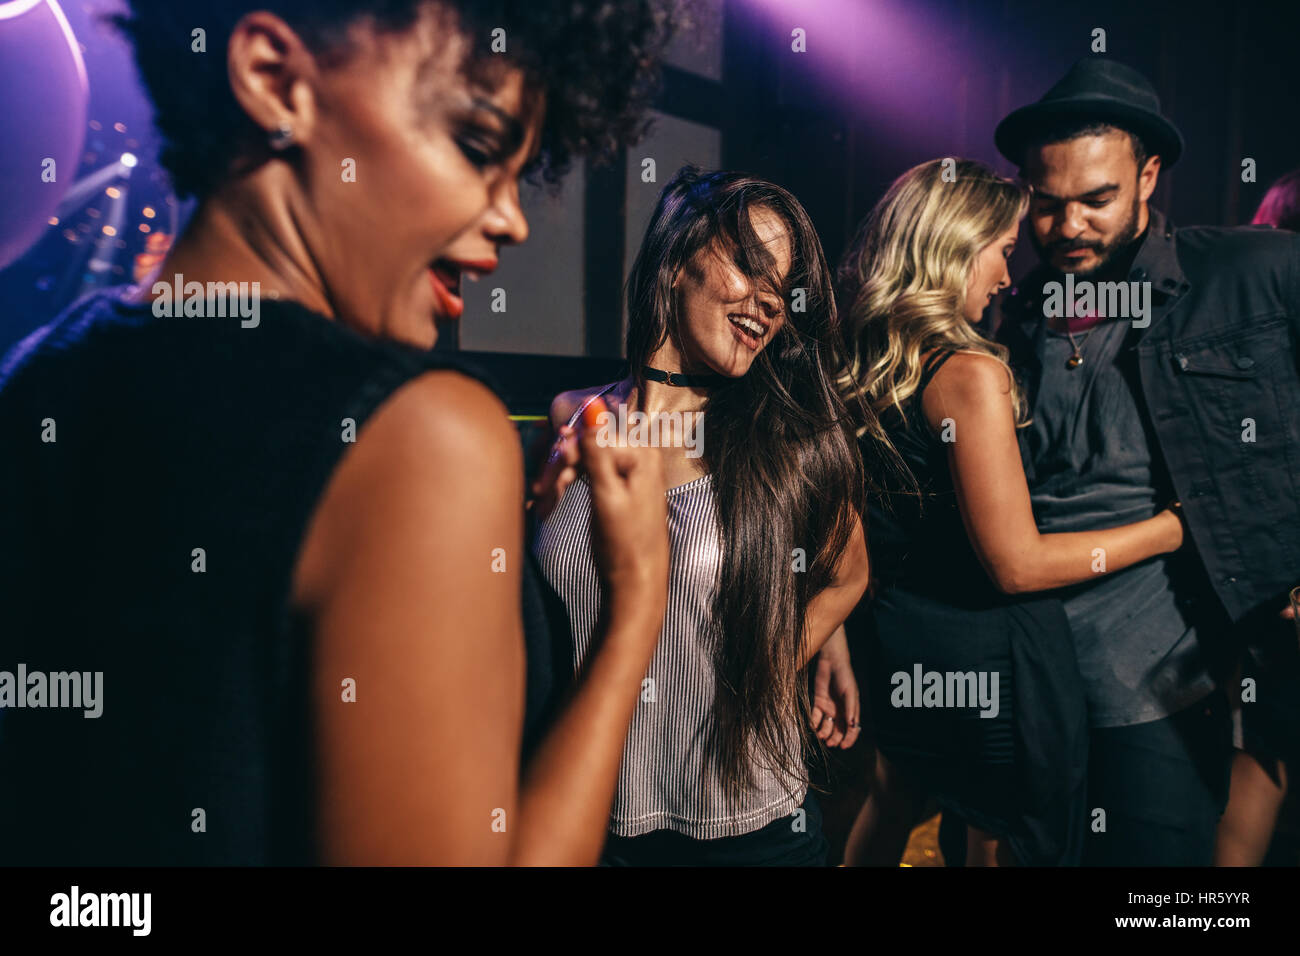 Group of young friends having fun together at the nightclub. Men and women dancing at disco. - Stock Image